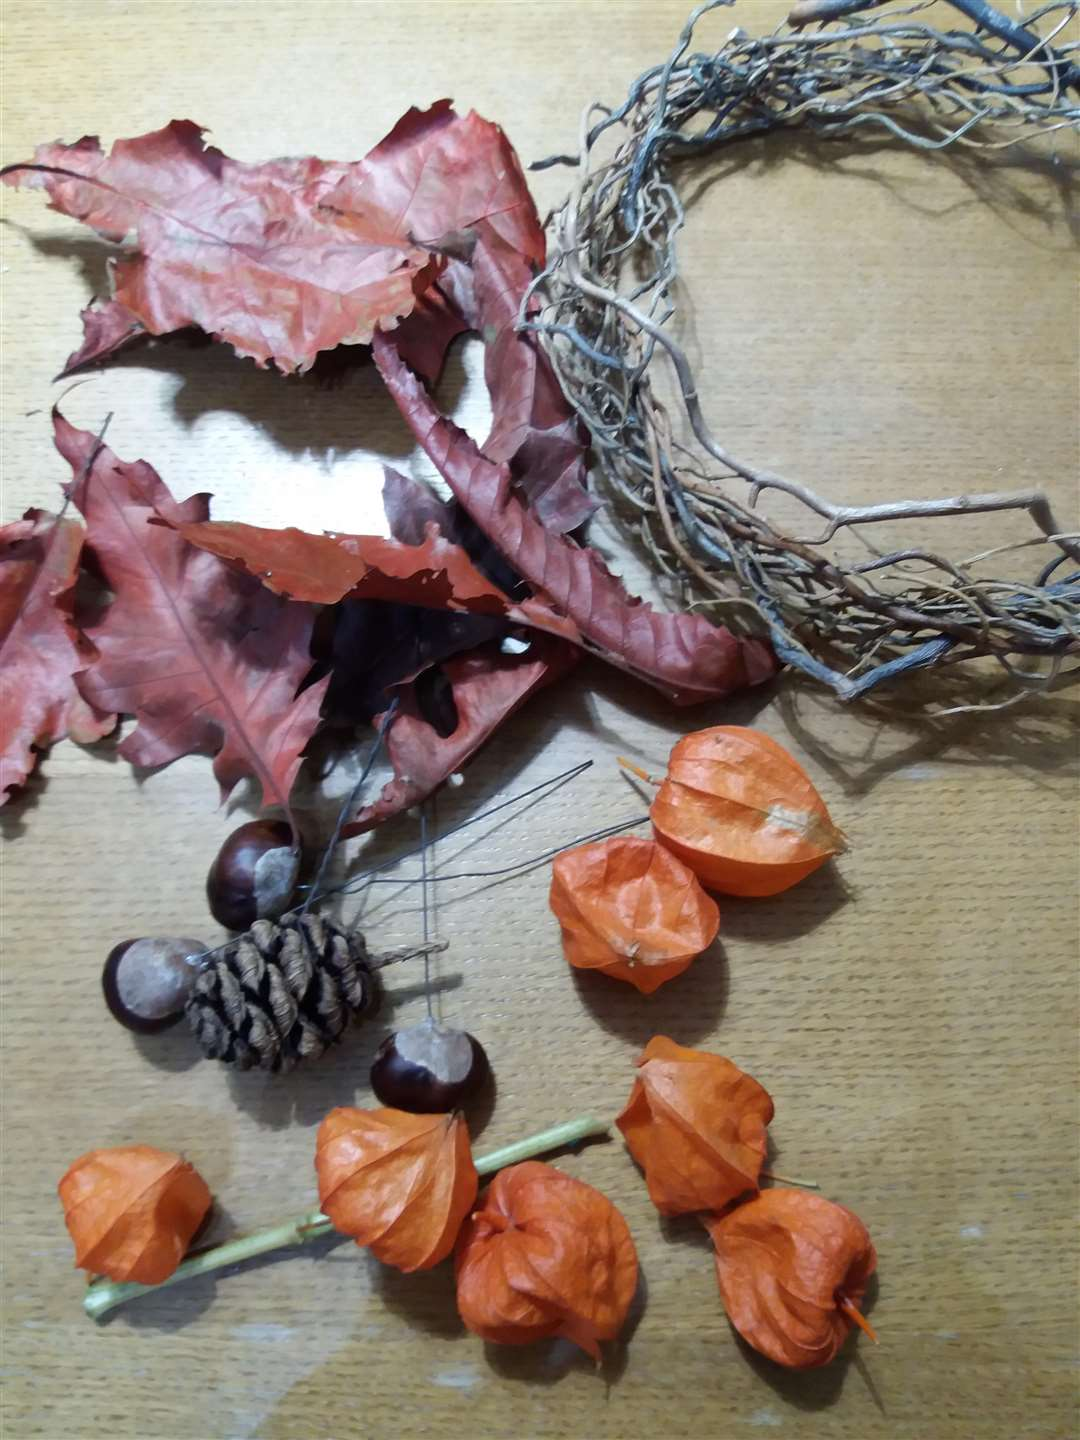 Forage for items such as twings and conkers to start making your wreath. (4768505)